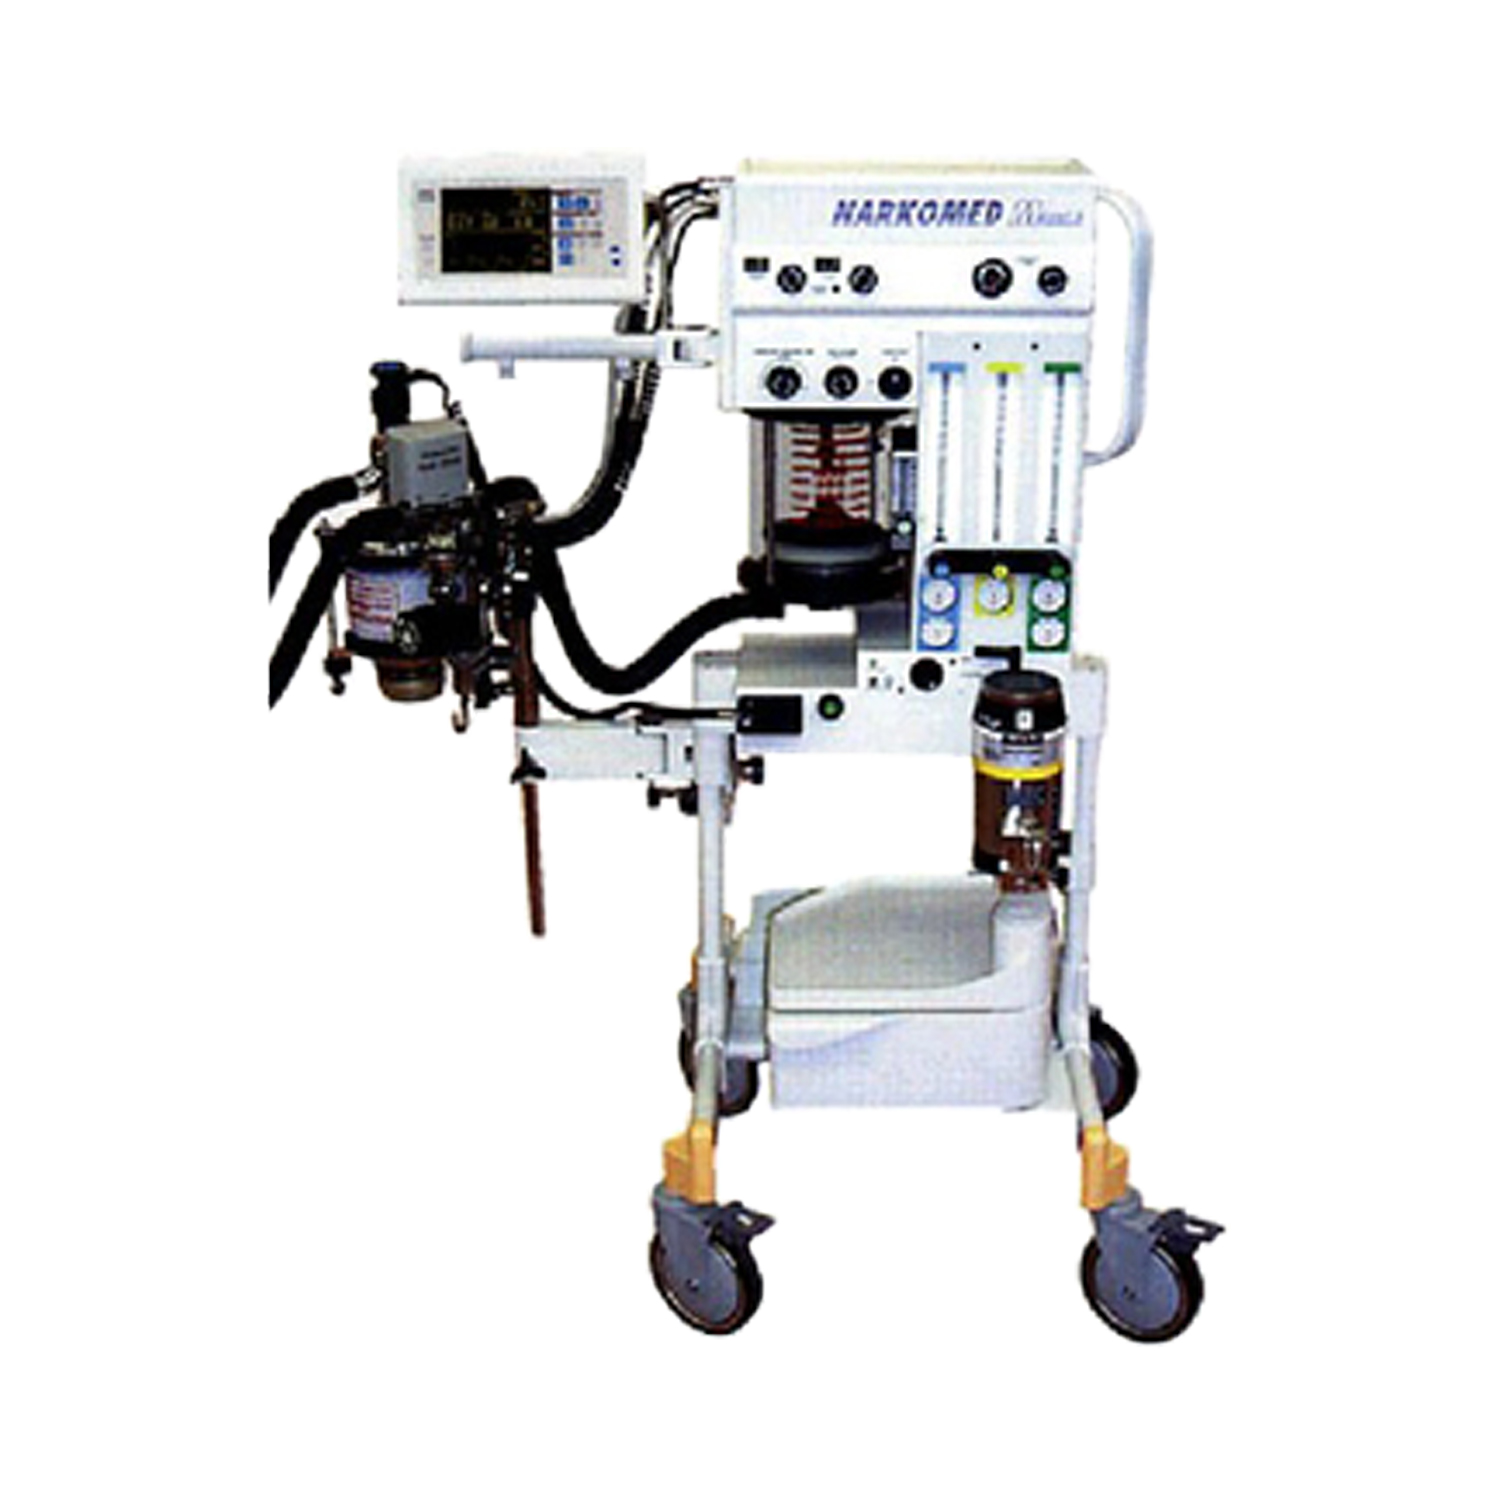 Drager Narkomed M - Mobile Anesthesia Machine